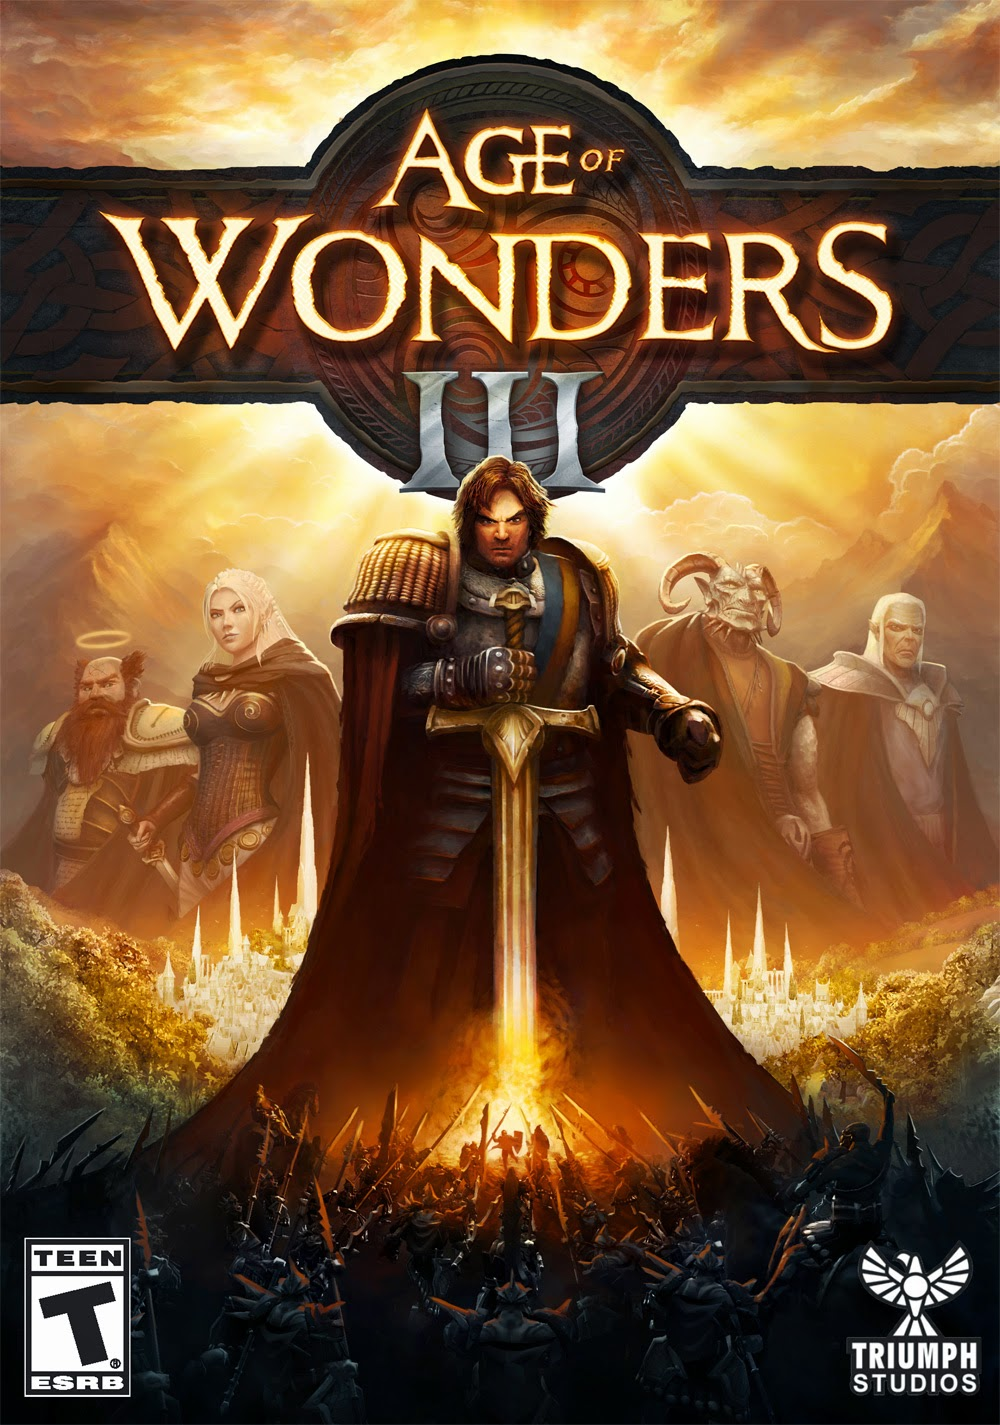 Download Age of Wonders 3 PC Highly Compressed cover www.giatbanget.blogspot.com